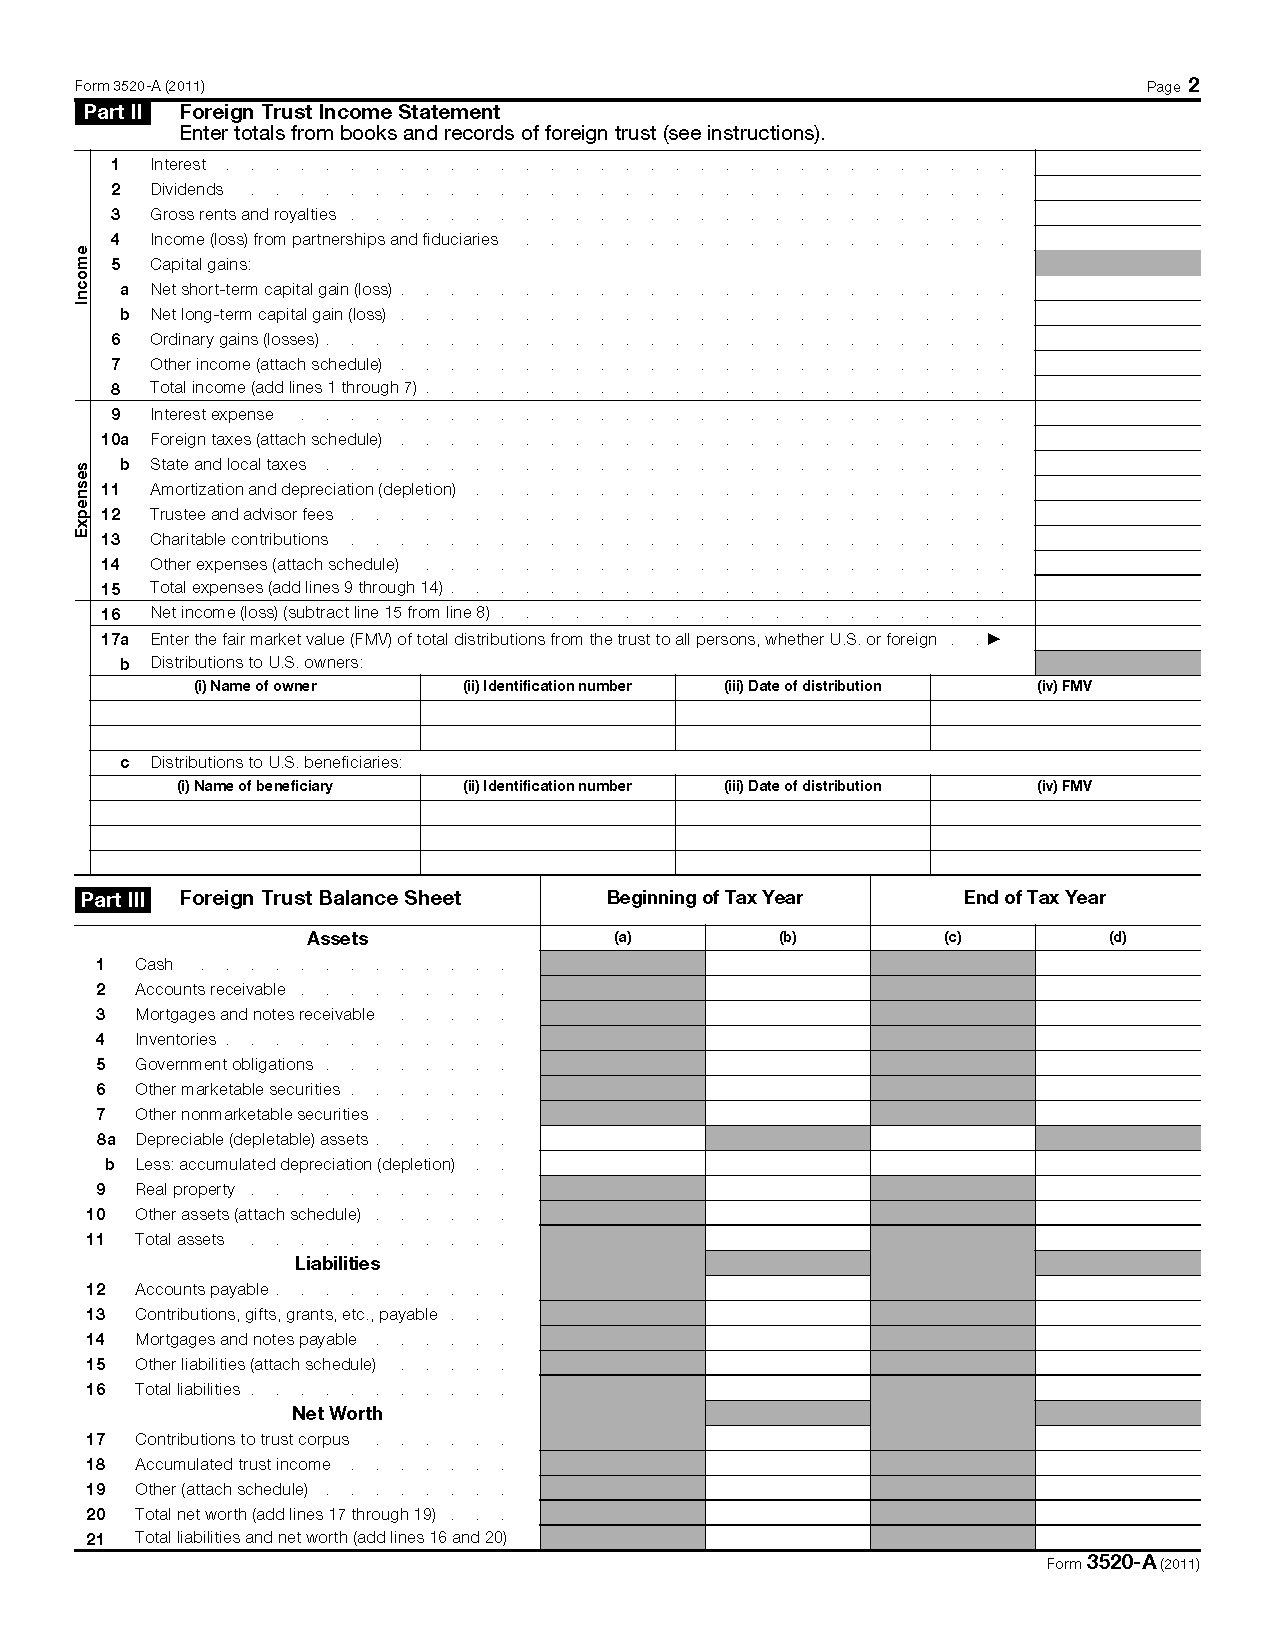 Form 3520-A Annual Information Return of Foreign Trust With a U.S. ...